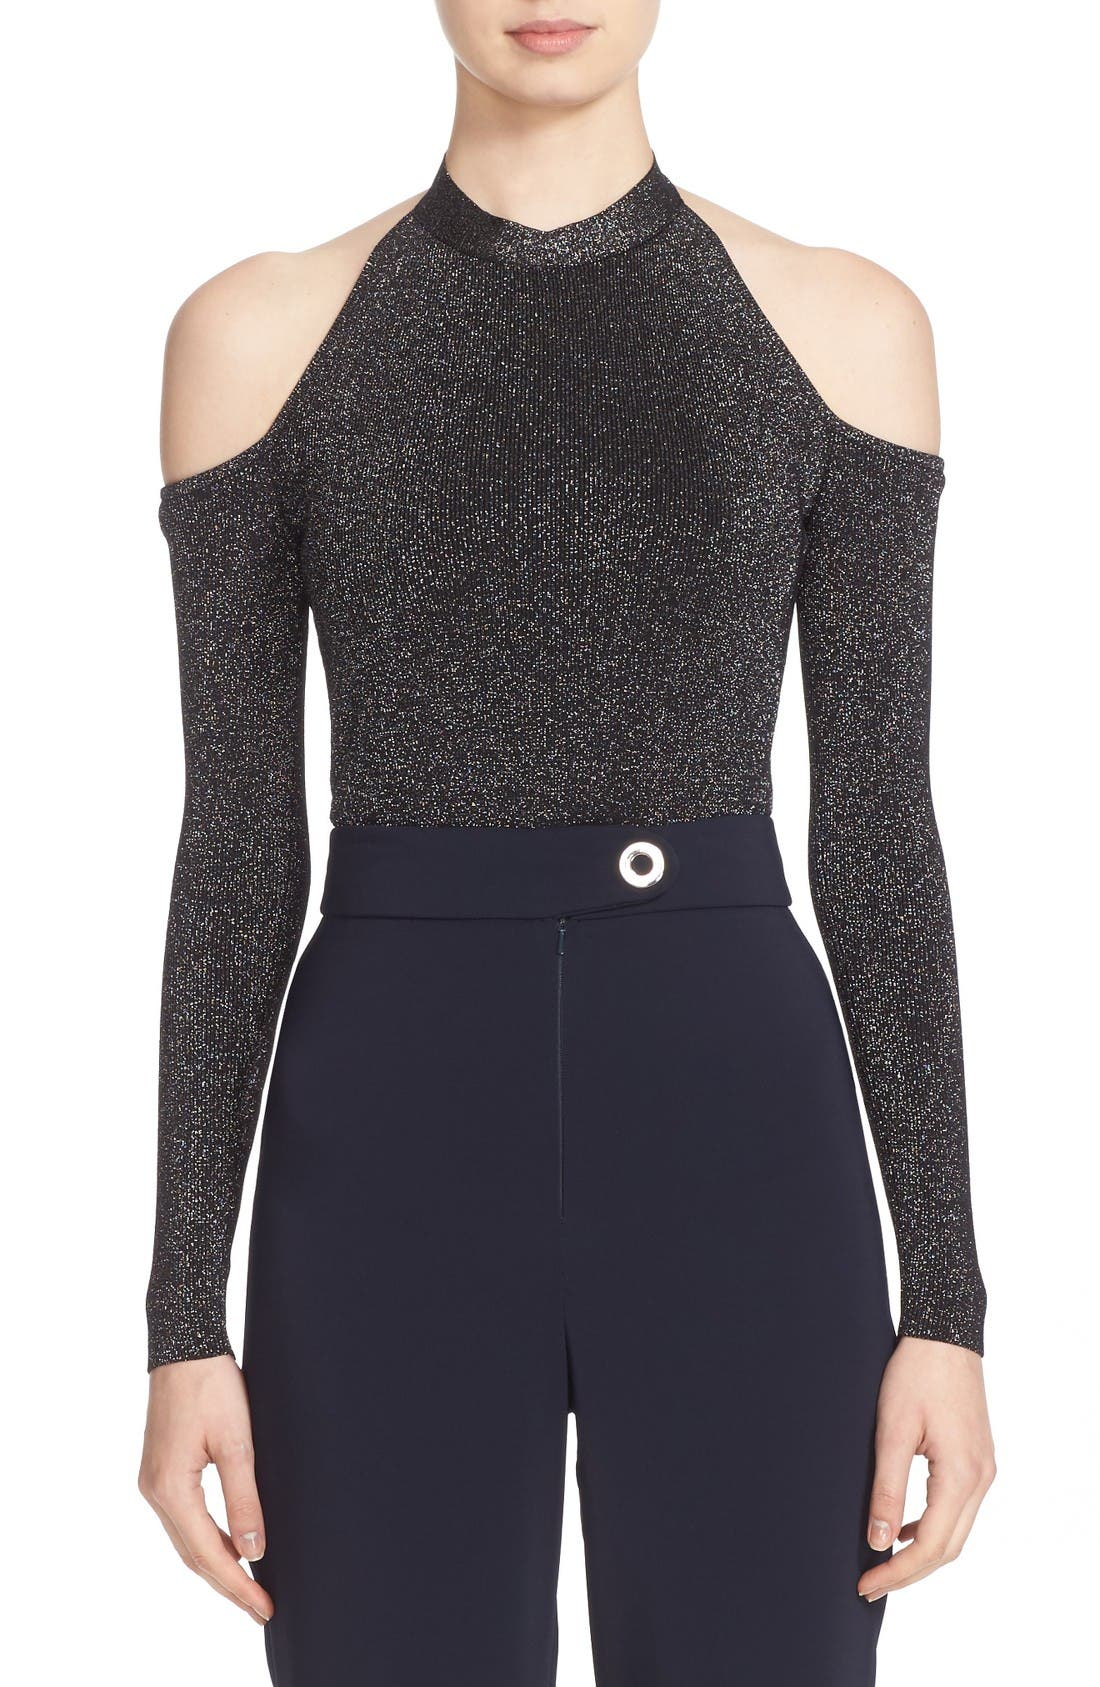 Cushnie et Ochs Knit Cold Shoulder Bodysuit